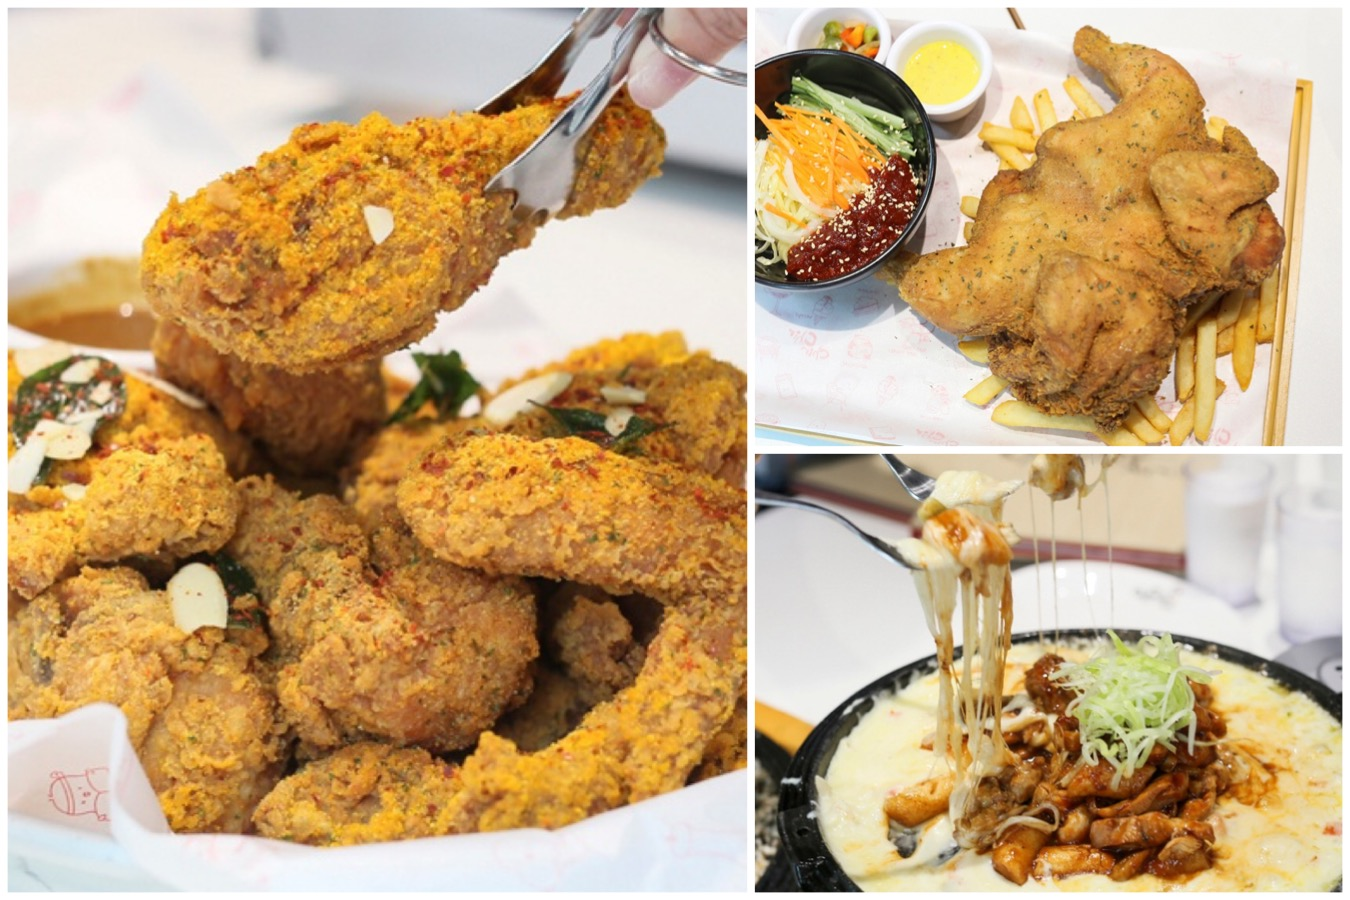 Chir Chir - Addictive Korean Fried Chicken. Get 2nd Chicken Dish At Only $1.11* On 11th Nov